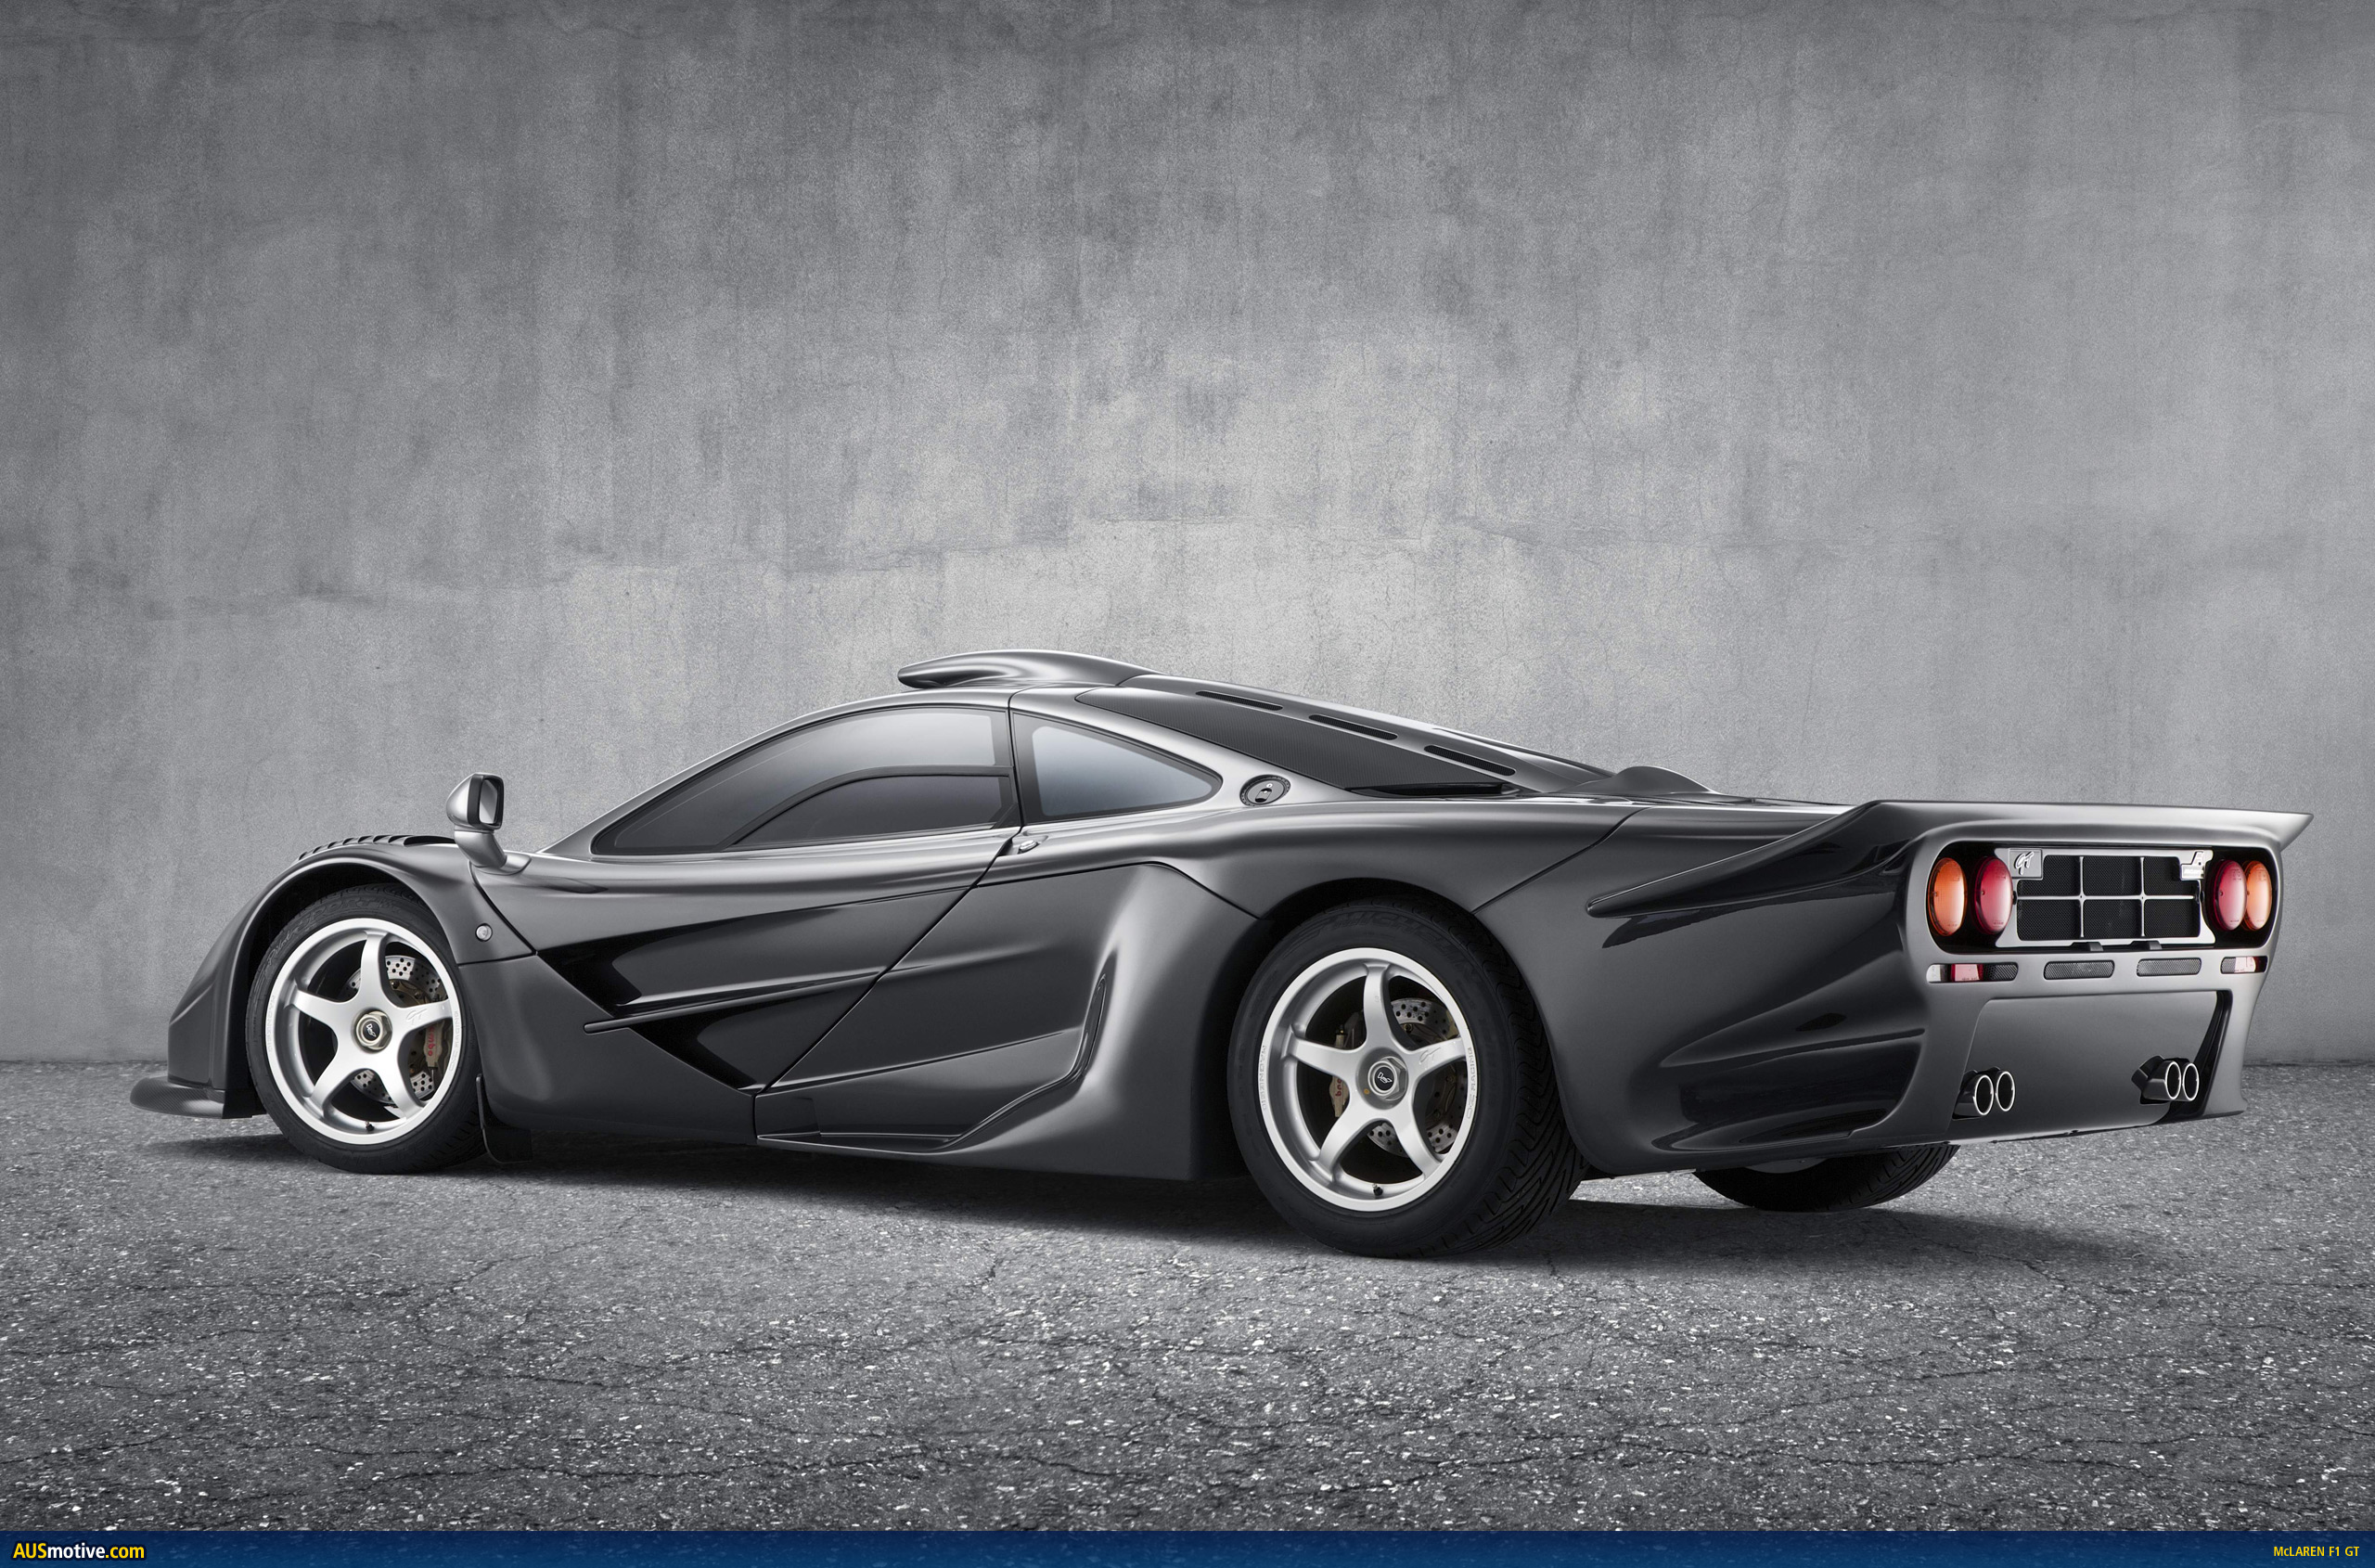 AUSmotive.com » McLaren F1 GT wallpapers